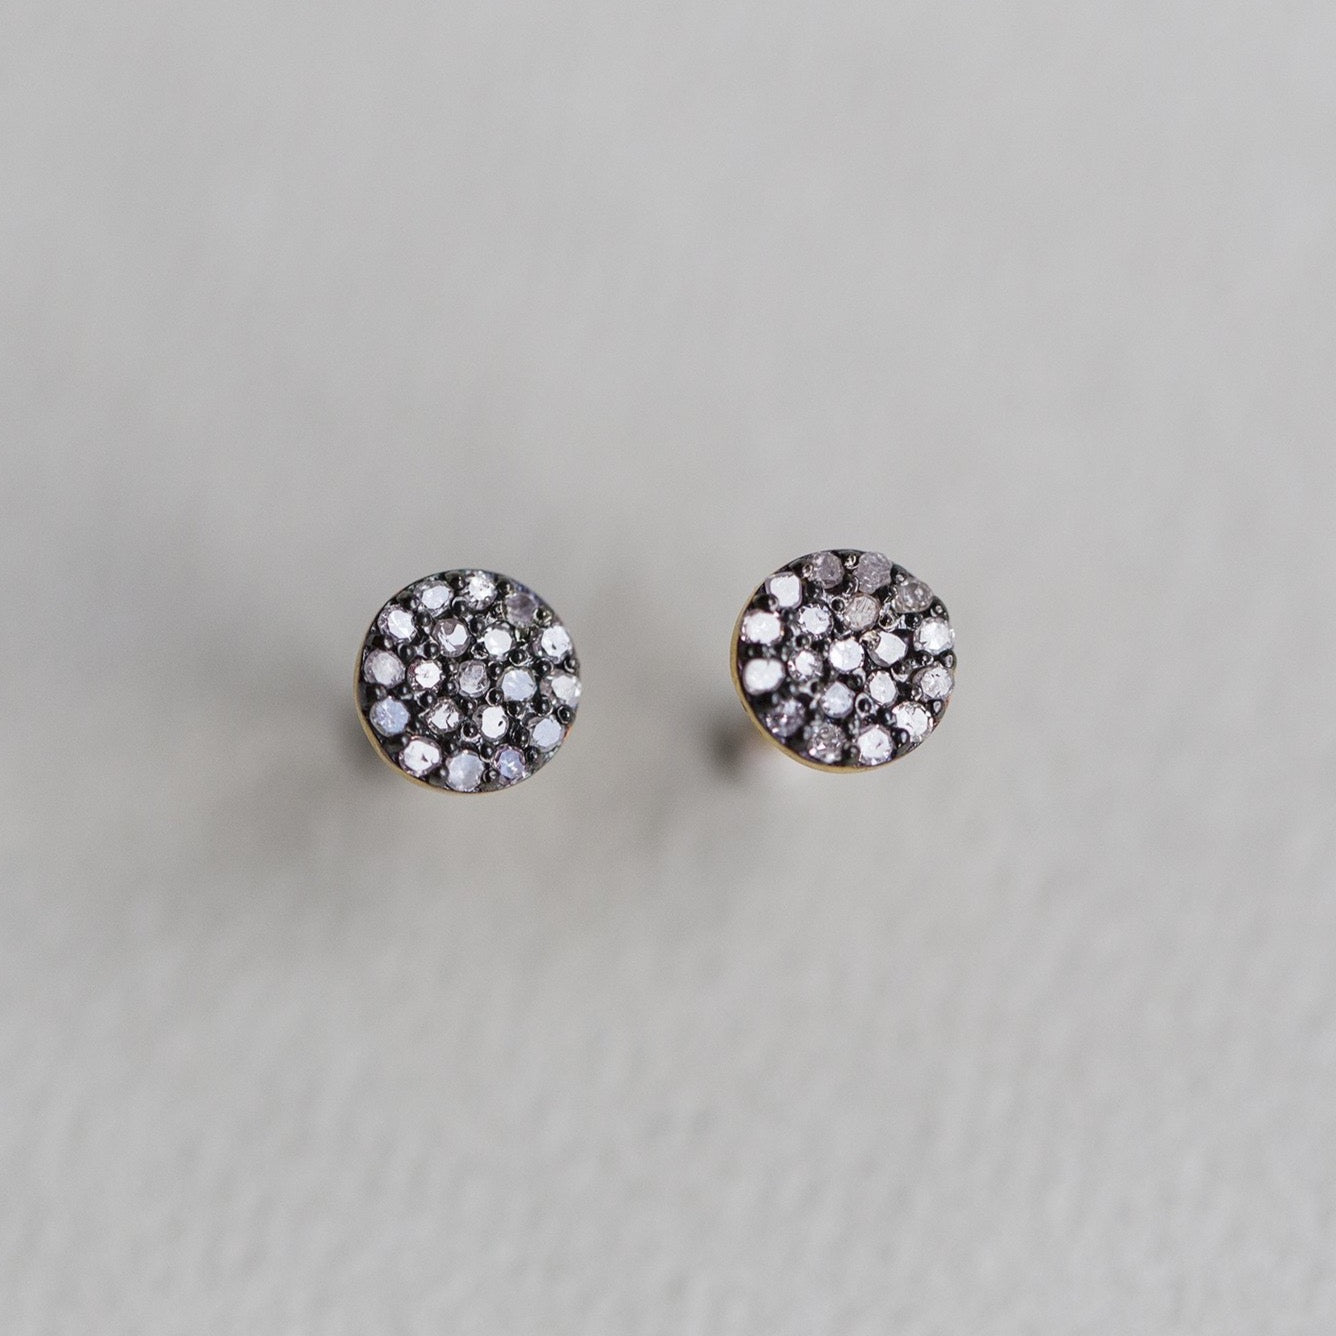 felt Affordable Diamond Range diamond pave disc earrings set on oxidised silver and with gold posts